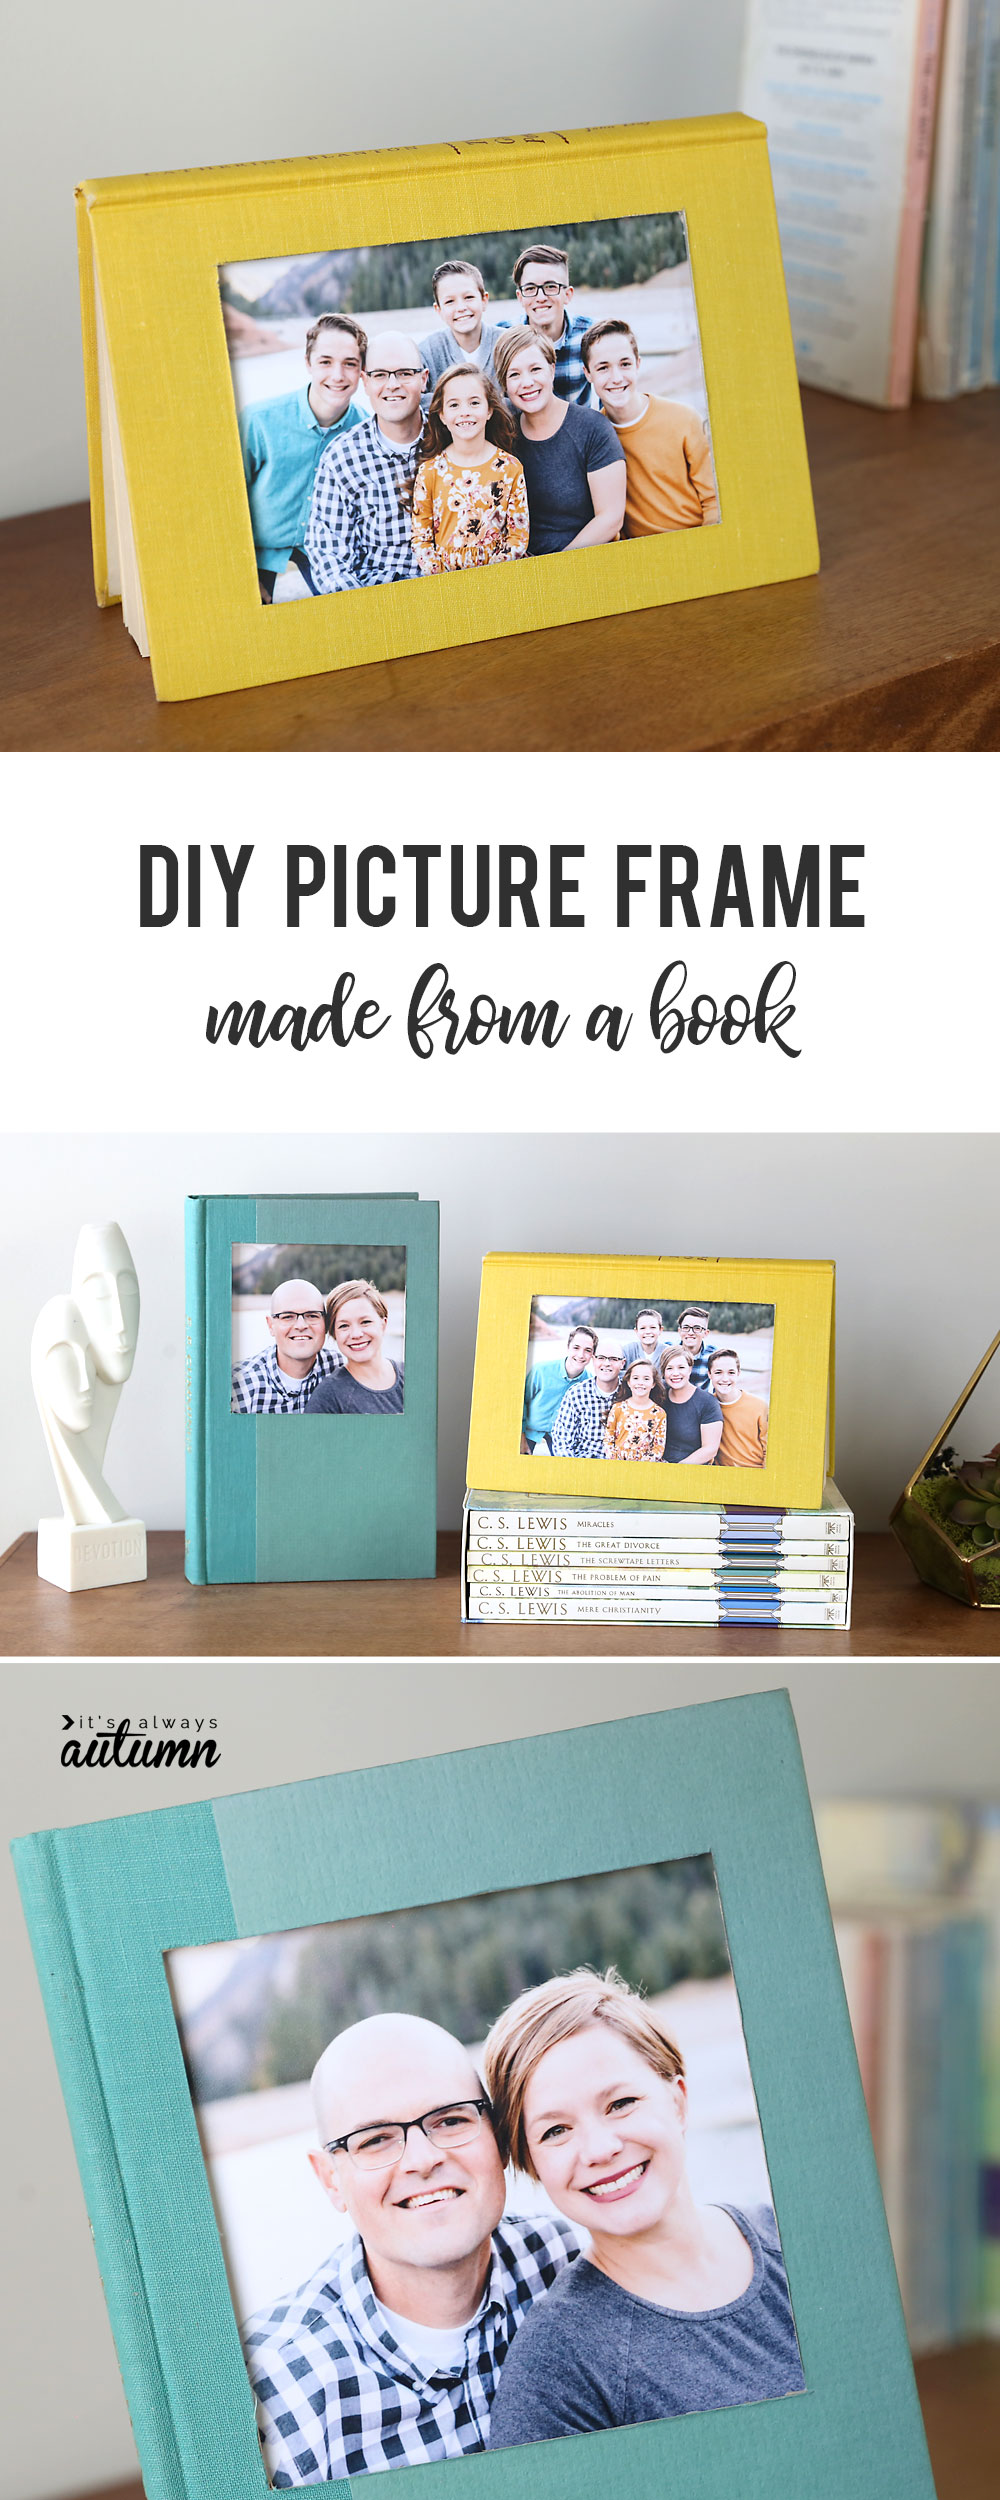 DIY picture frame made from a book